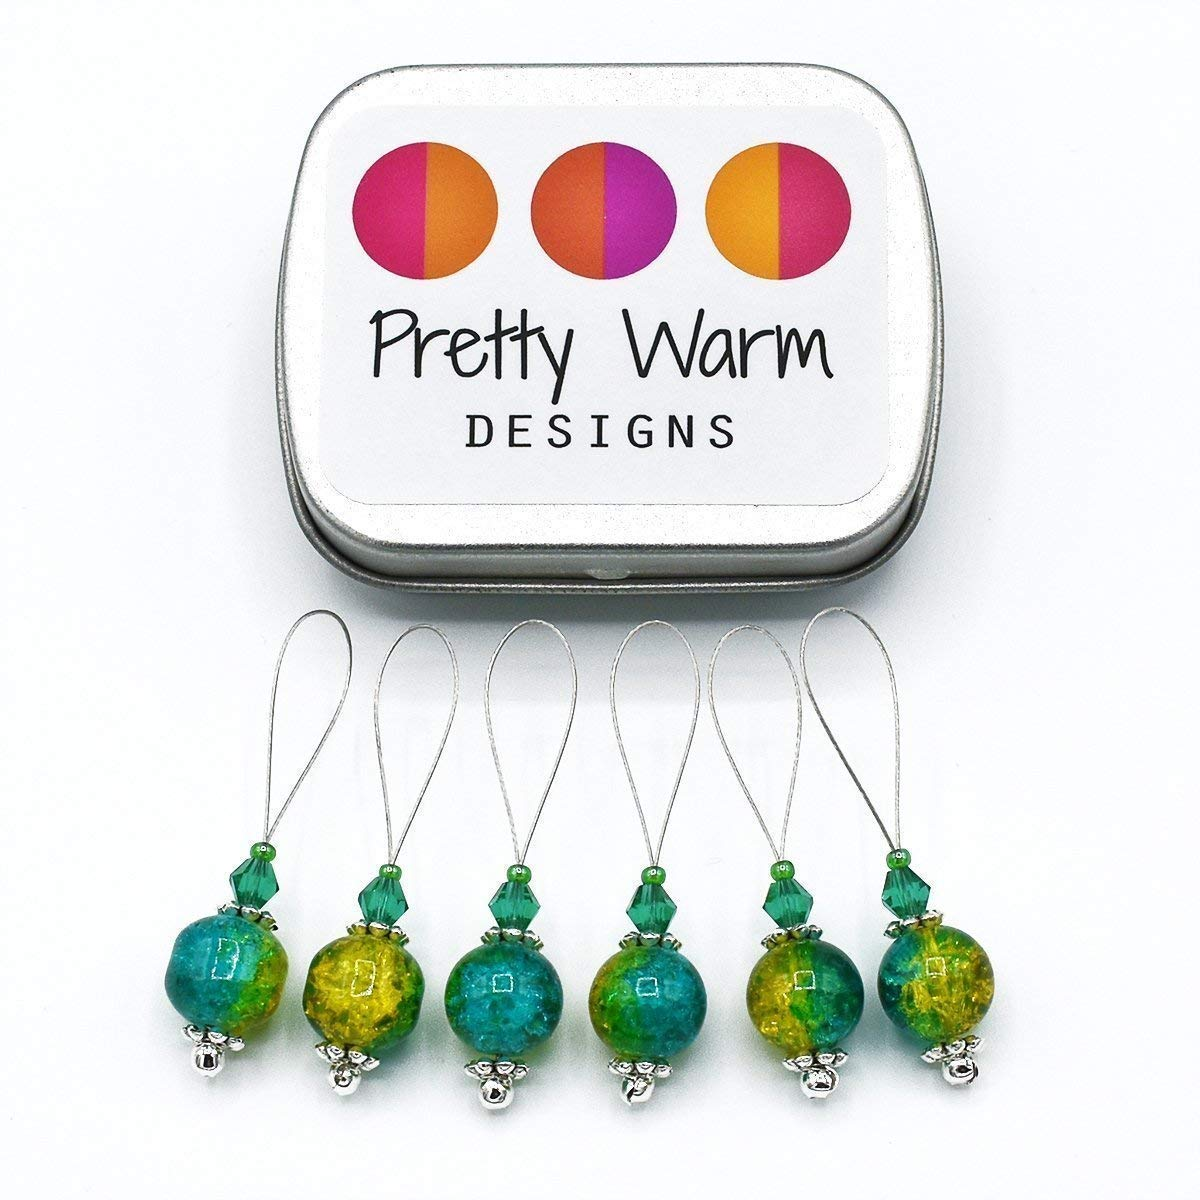 Teal and Yellow Snag Free Stitch Markers Jewelry for Knitting (Set of 6 with Tin)